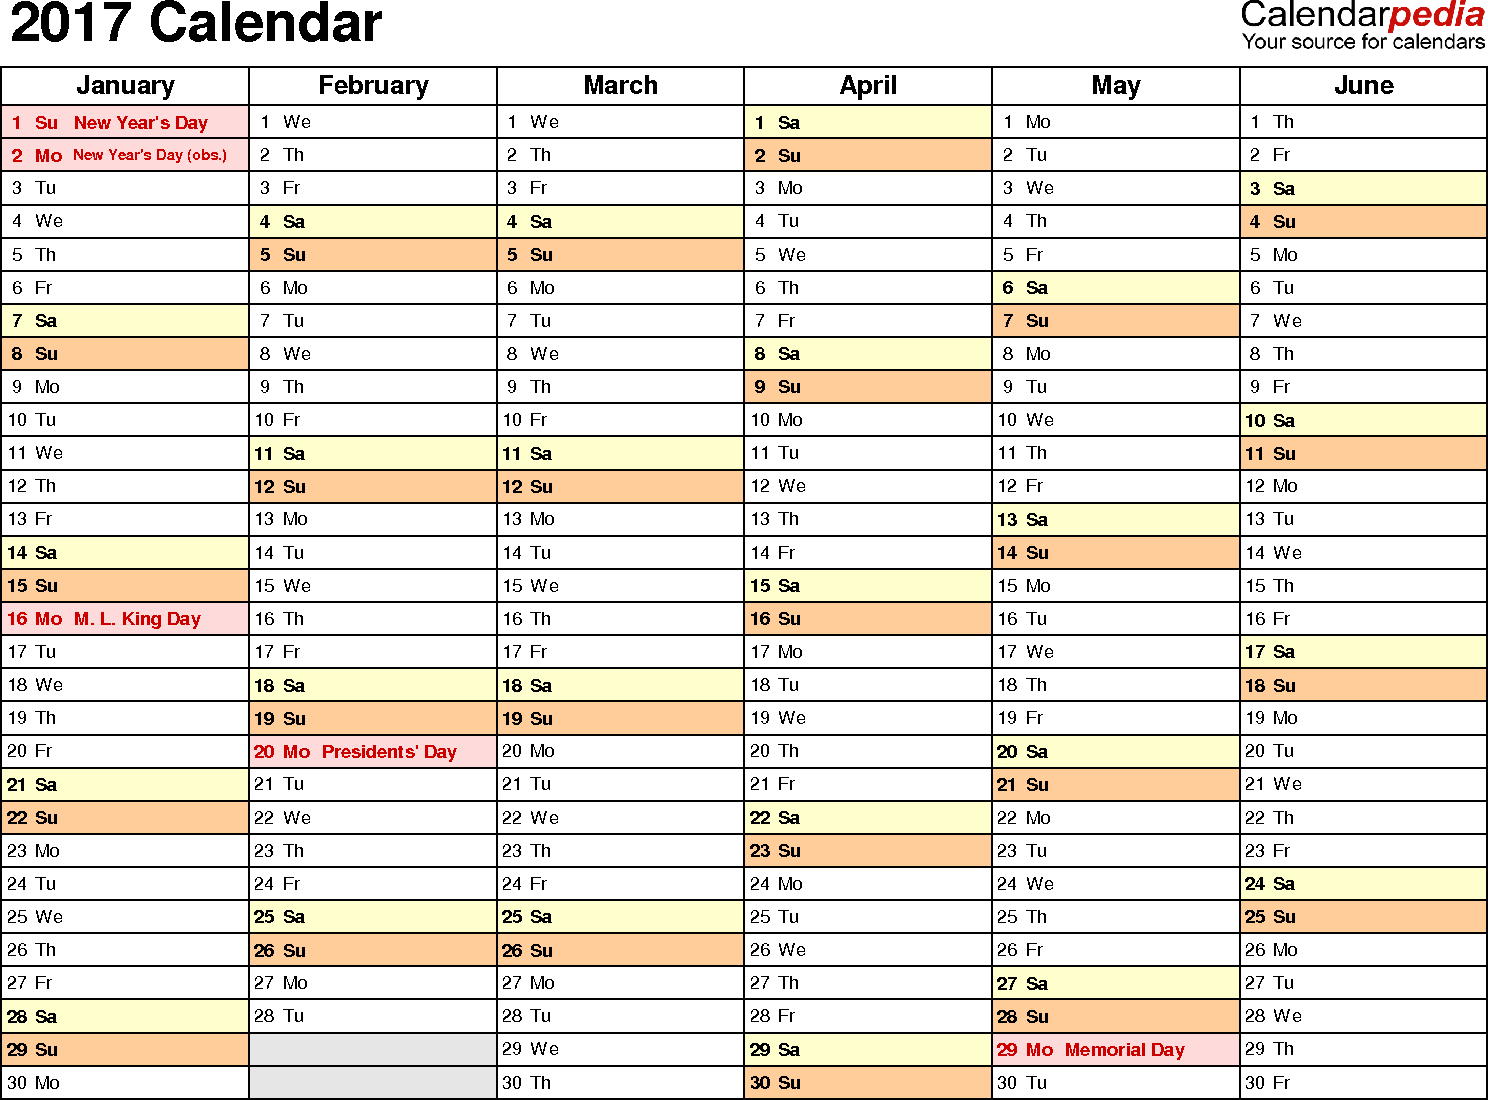 Ediblewildsus  Scenic  Calendar  Download  Free Printable Excel Templates Xls With Goodlooking Template   Calendar For Excel Months Horizontally  Pages Landscape Orientation With Archaic Trend Excel Also Excel Return Day Of Week In Addition How To Find The Average On Excel And Time Function Excel As Well As Excel Conditional Formatting Based On Text Additionally Excel Add Footer From Calendarpediacom With Ediblewildsus  Goodlooking  Calendar  Download  Free Printable Excel Templates Xls With Archaic Template   Calendar For Excel Months Horizontally  Pages Landscape Orientation And Scenic Trend Excel Also Excel Return Day Of Week In Addition How To Find The Average On Excel From Calendarpediacom